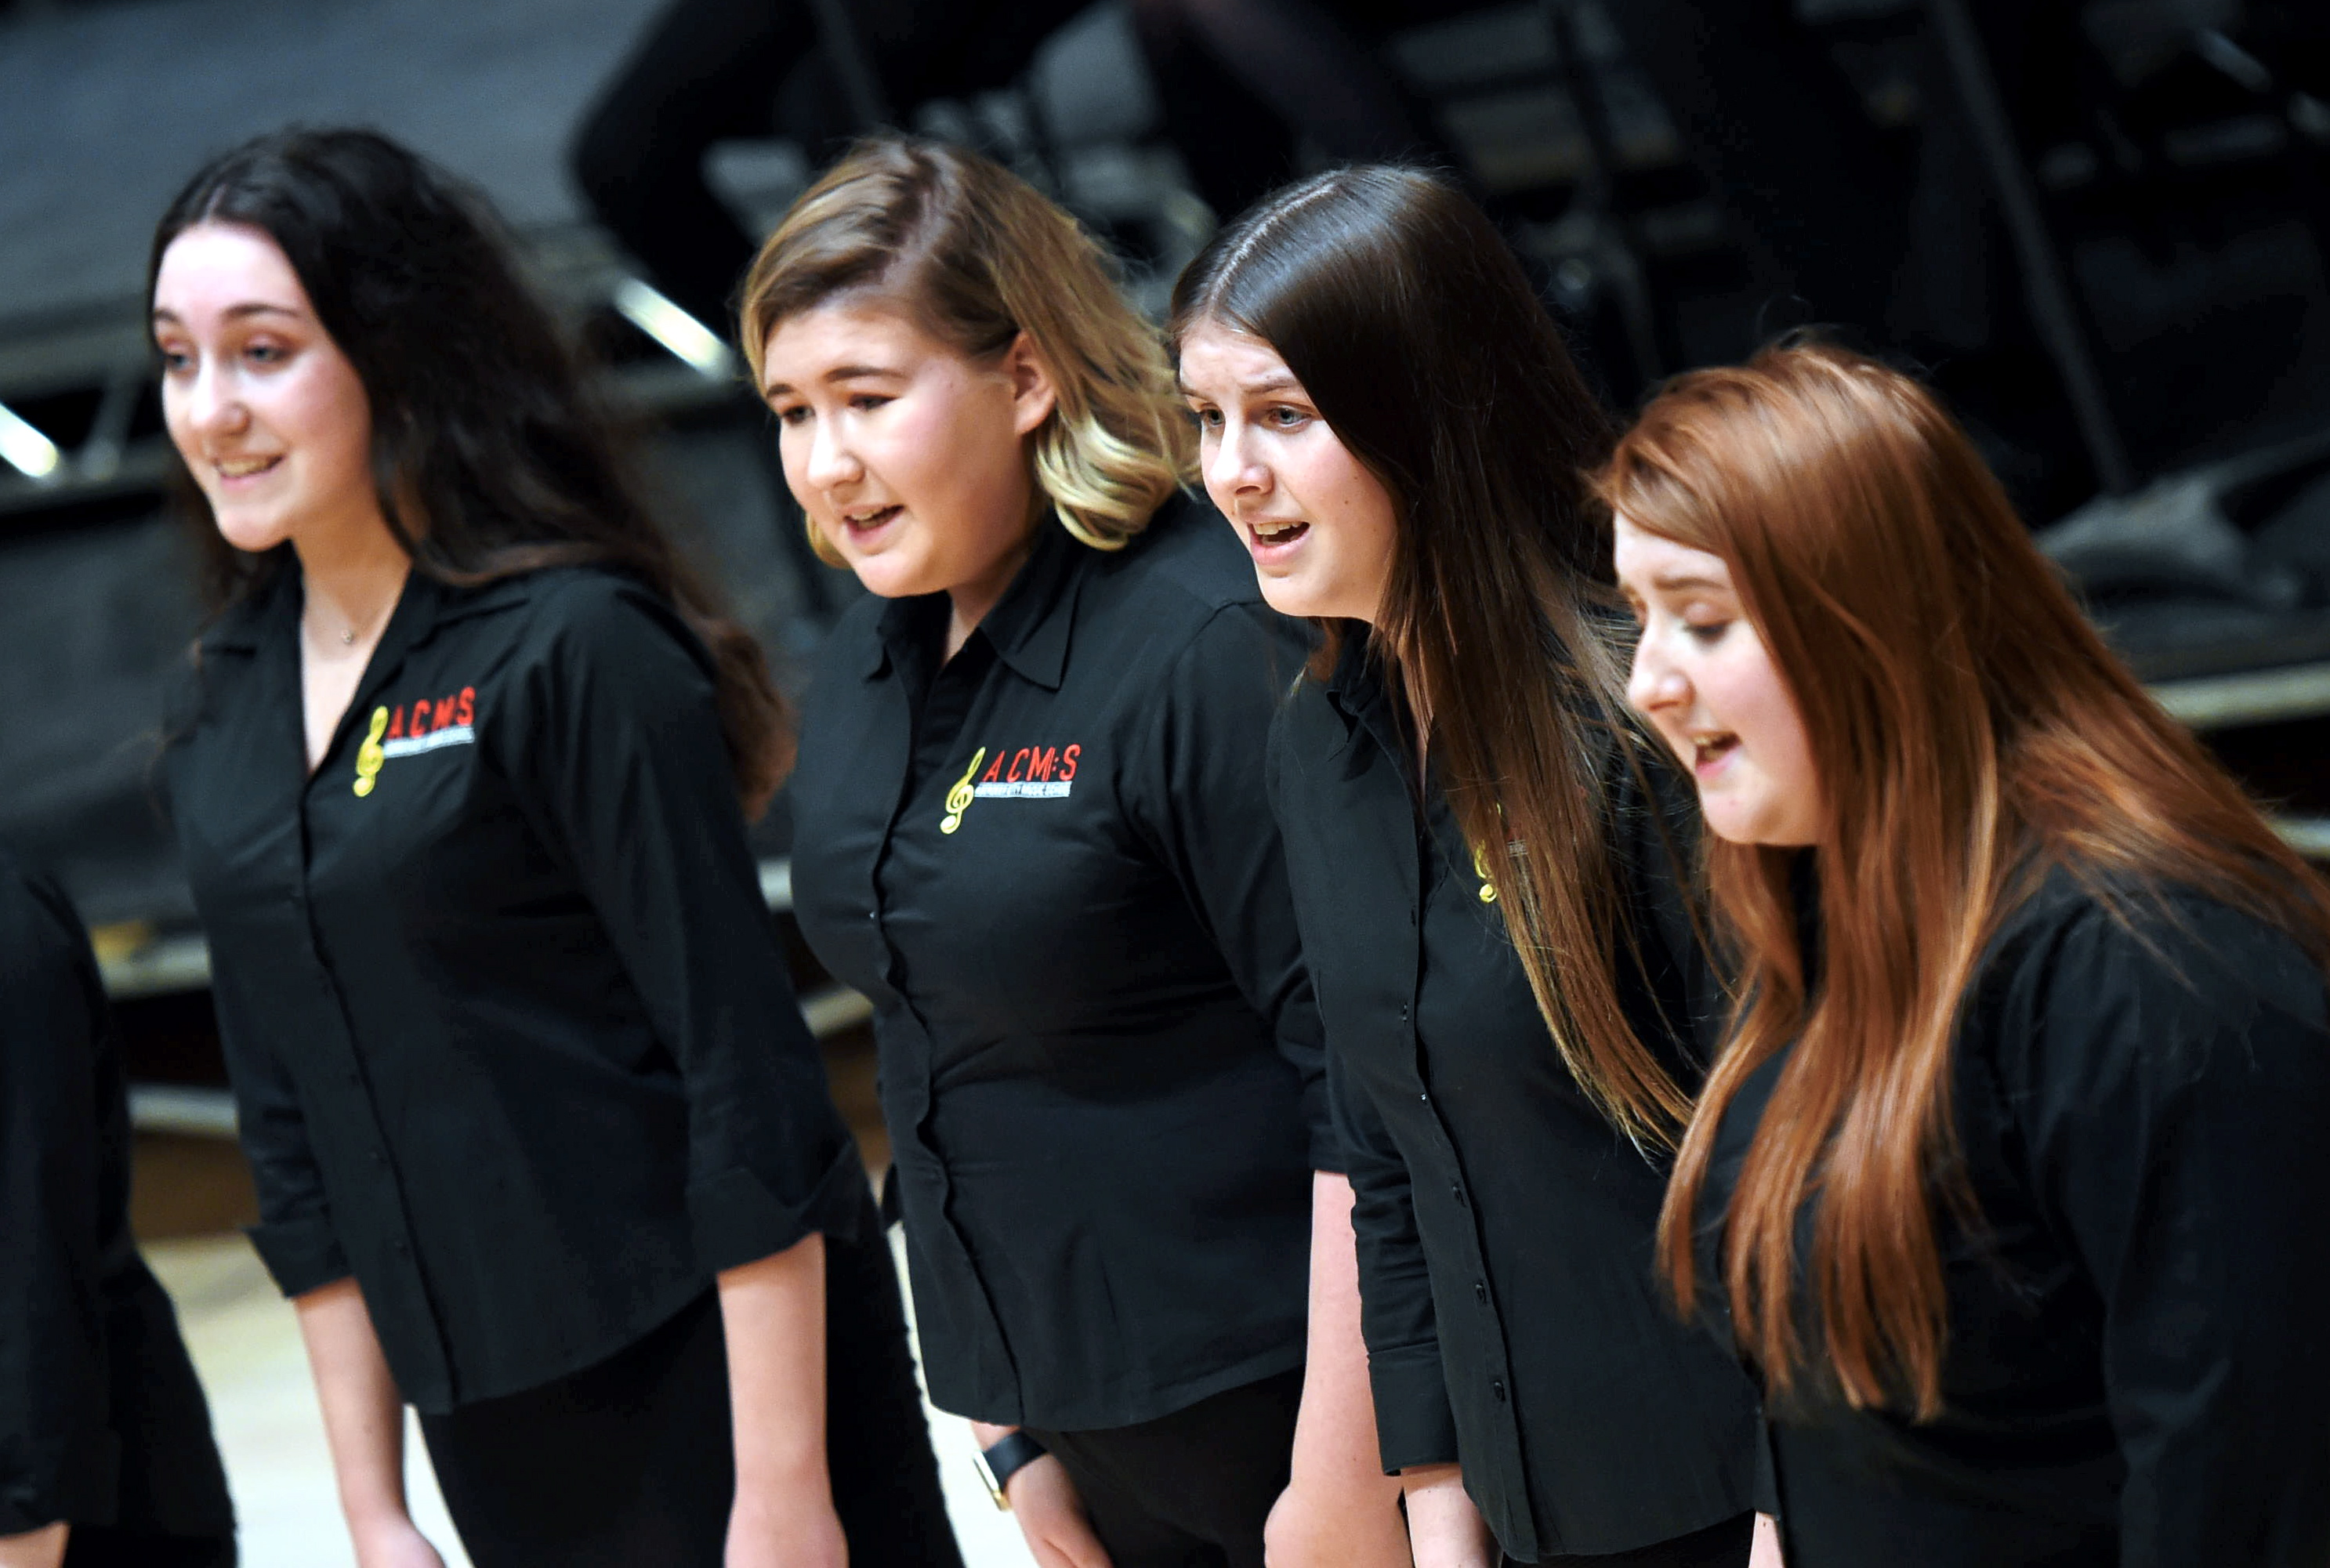 Aberdeen City Music School and Aberdeen Singing Hands Choir have released a collaborative video of their members providing a rendition of Moon River